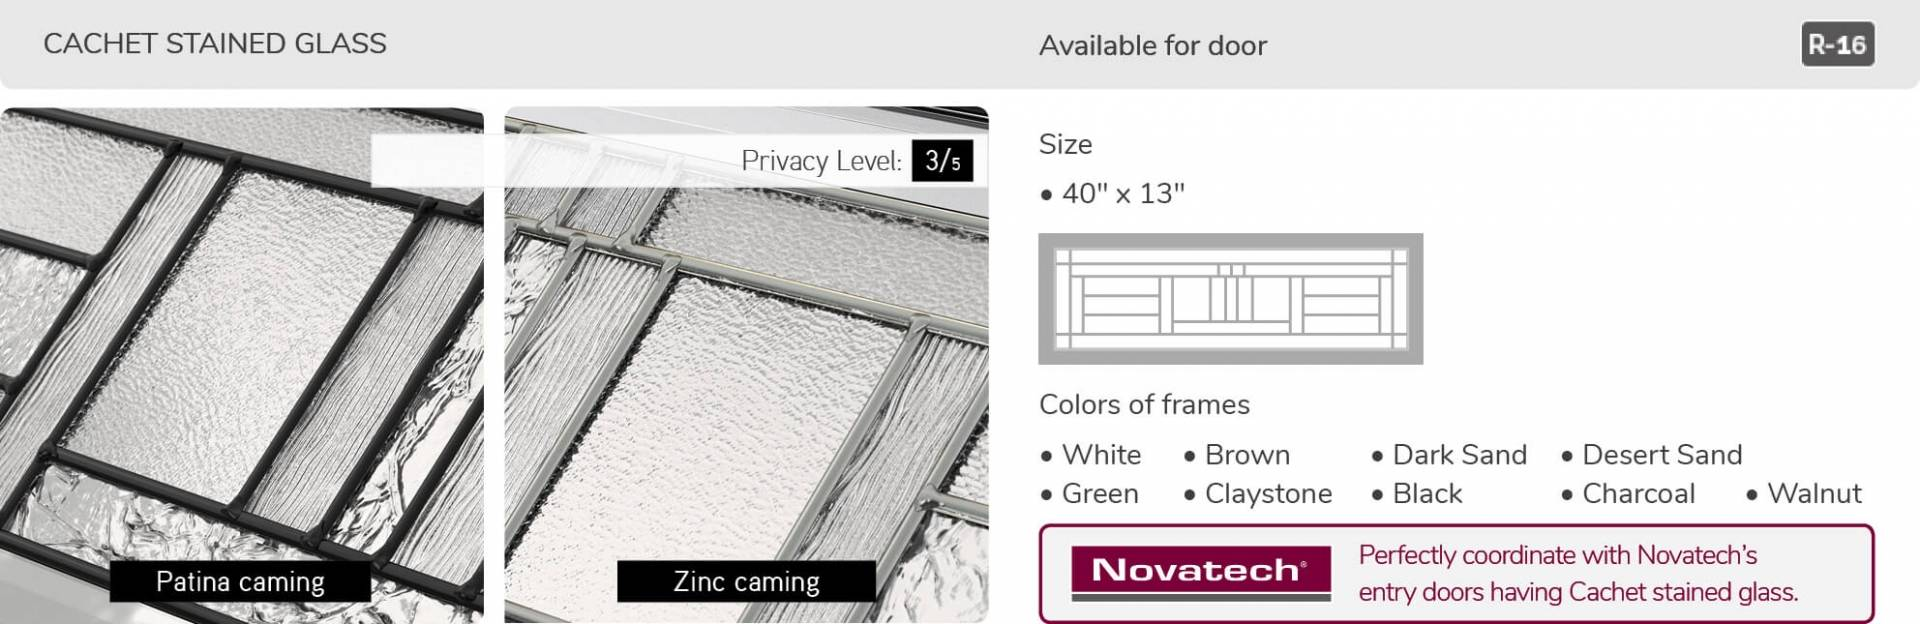 Cachet glass, 40' x 13', available for door R-16